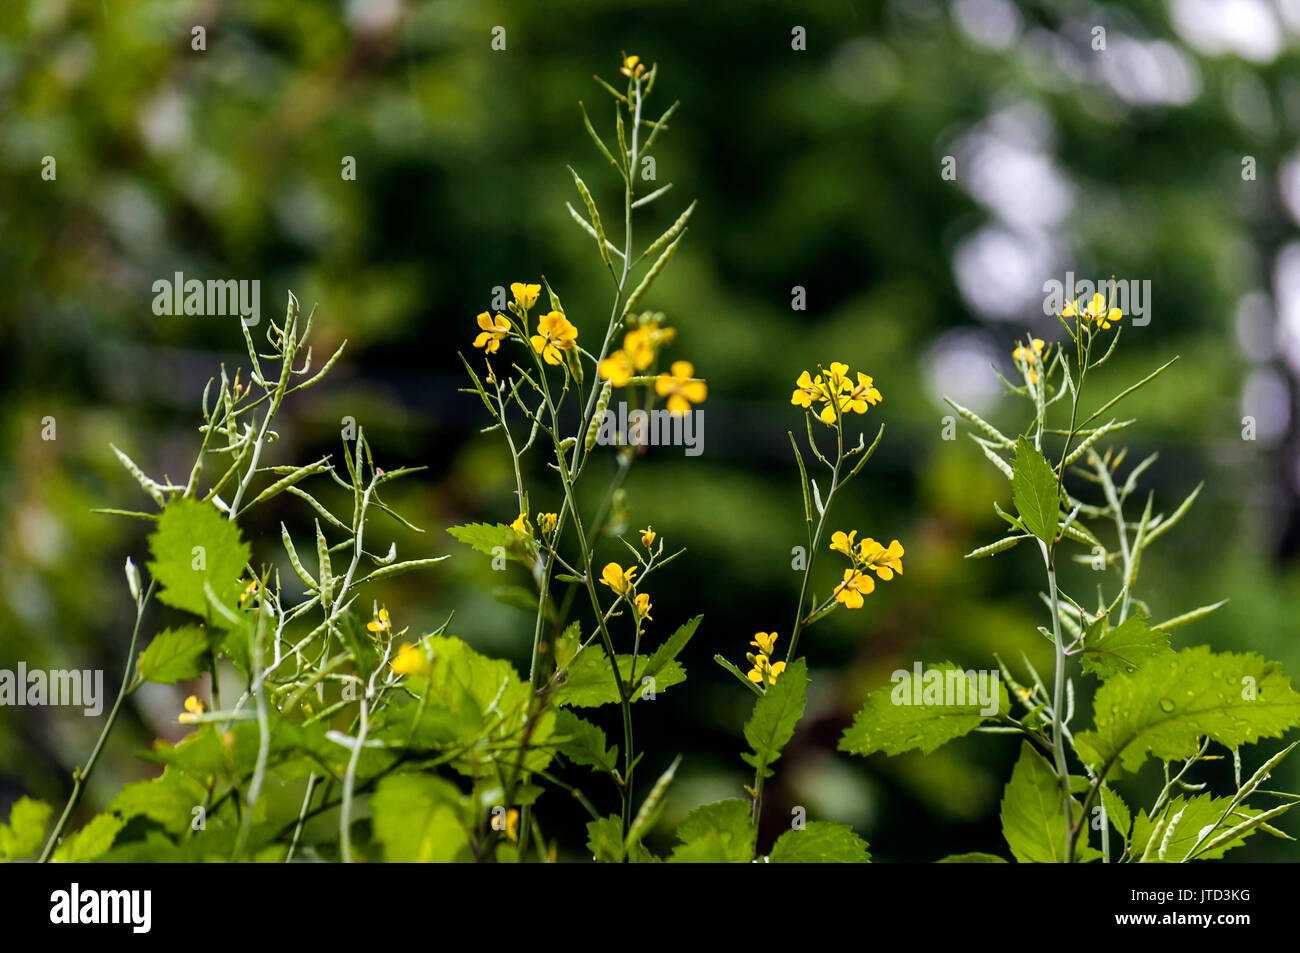 Yellow Flowers Small Mustard Green Plants Seed Pods Green Backdrop